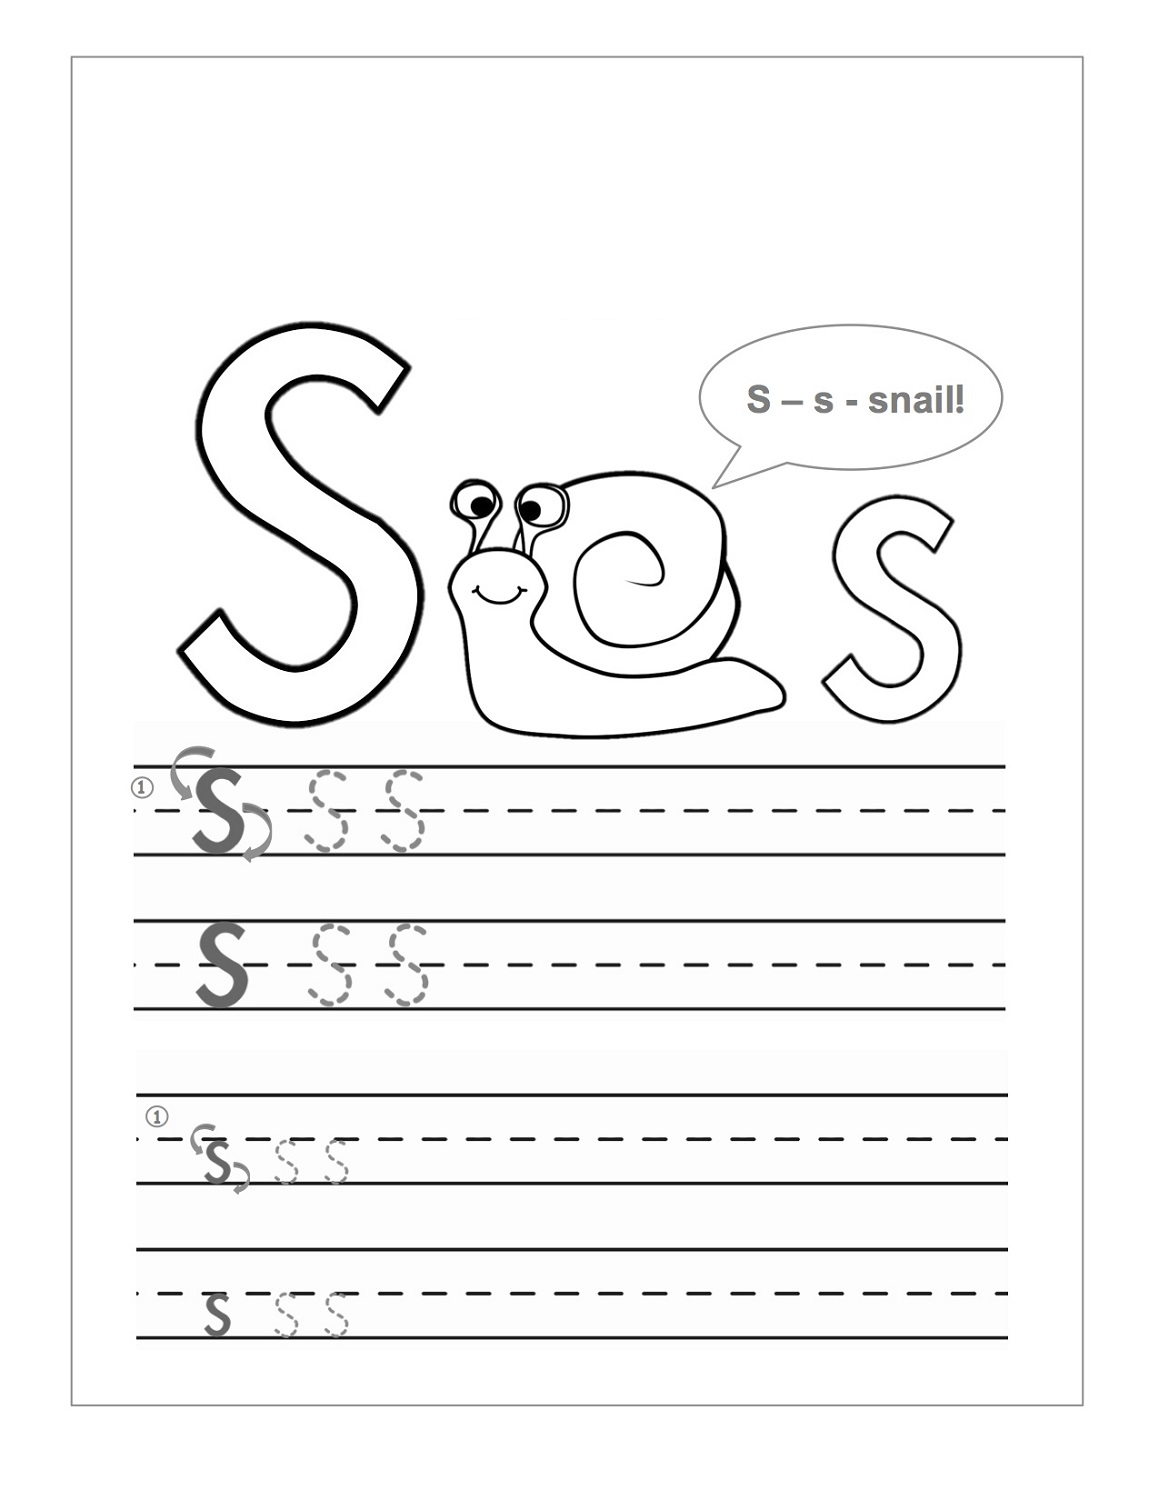 This is an image of Modest Letter S Printable